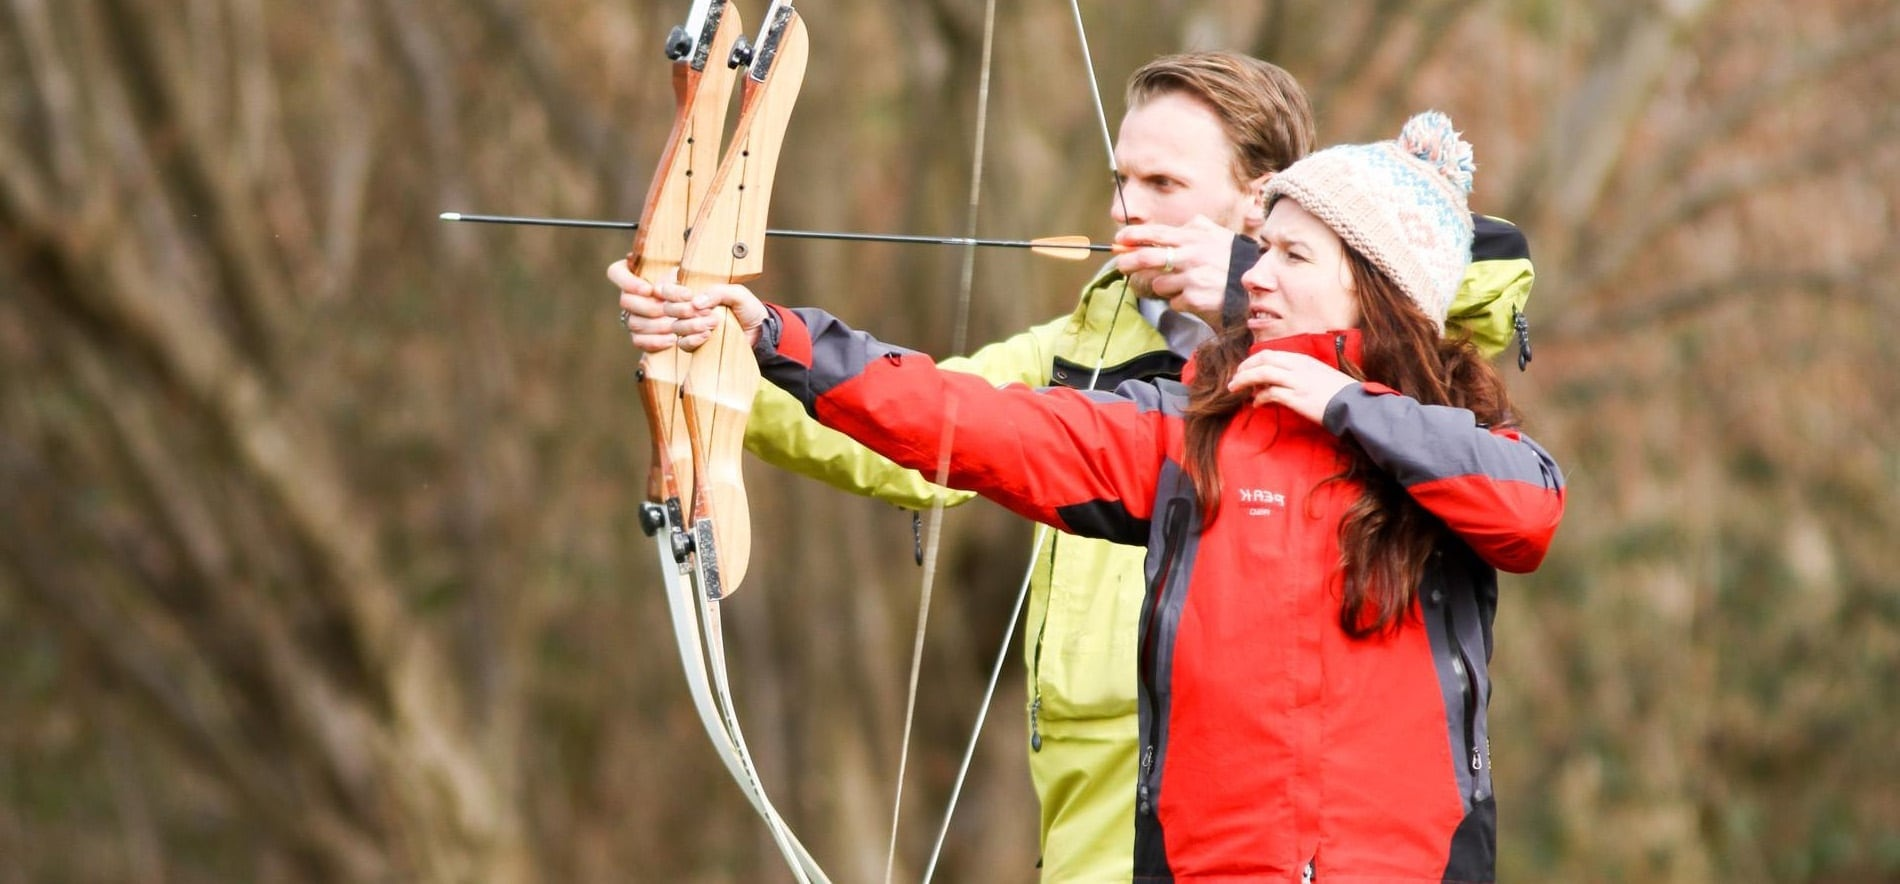 Half Day Archery Experience - North Wales-4